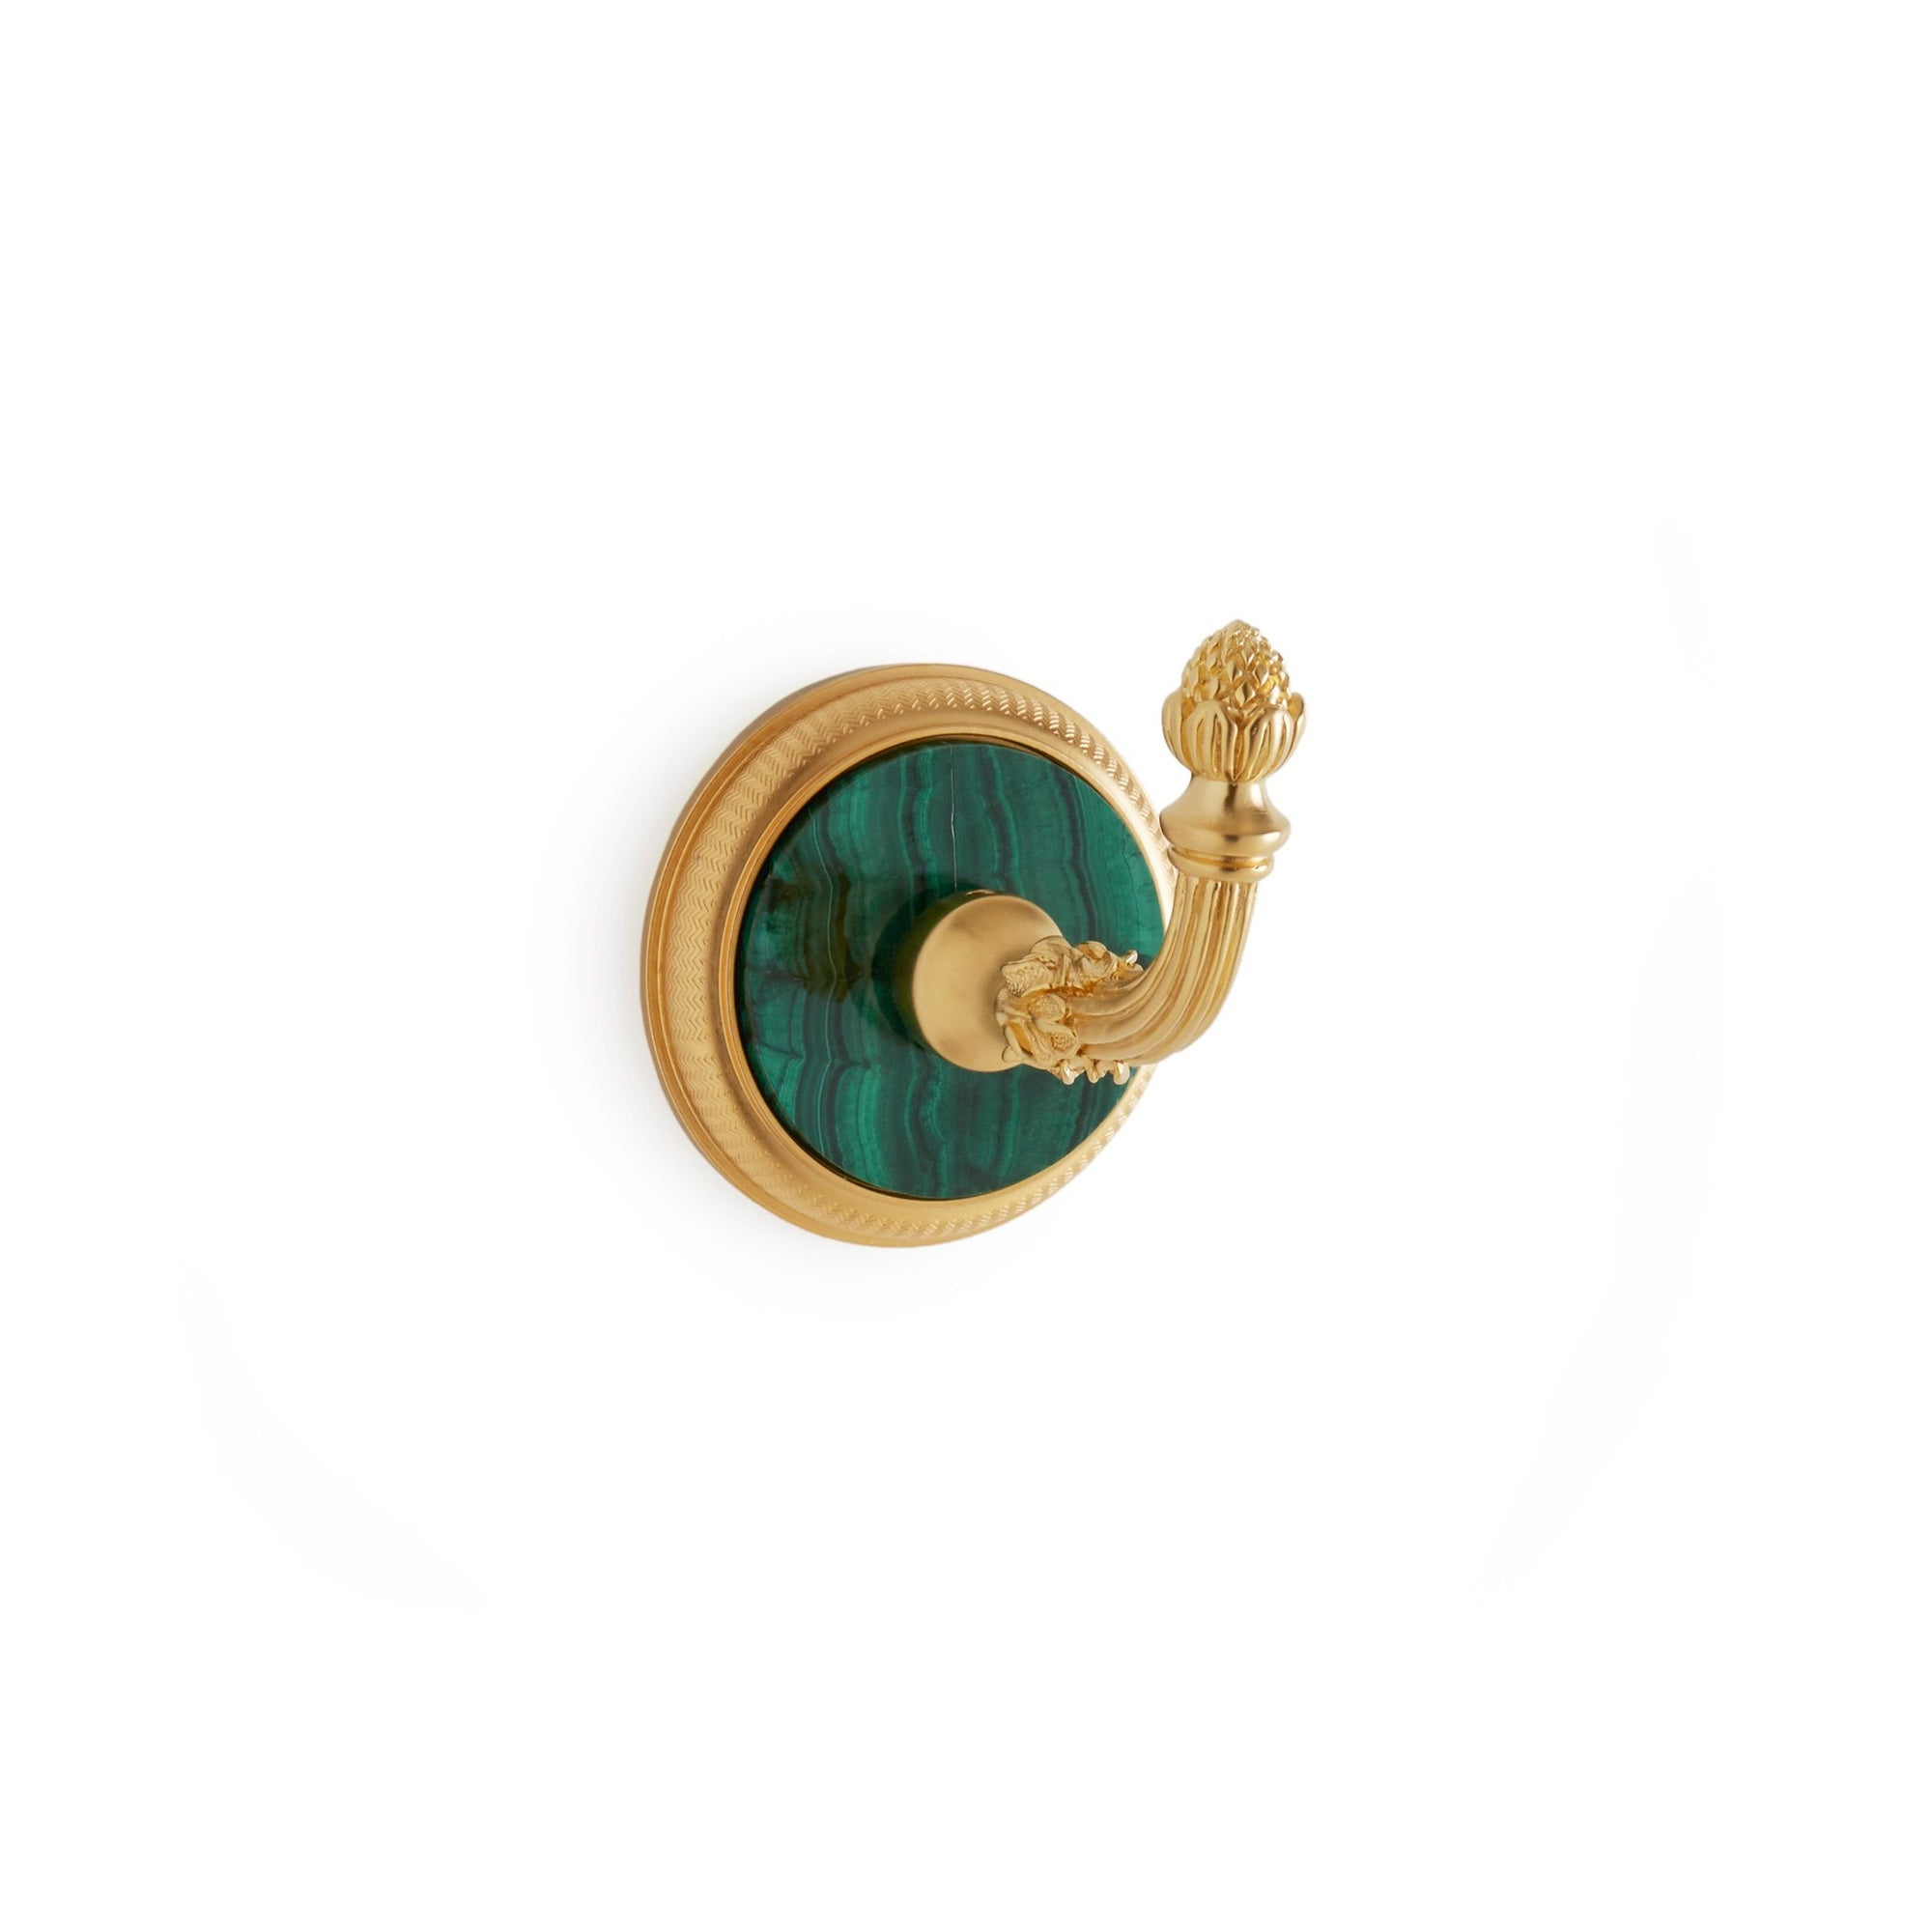 3440-MALA-GP Sherle Wagner International Knurled Hook with Malachite insert in Gold Plate metal finish